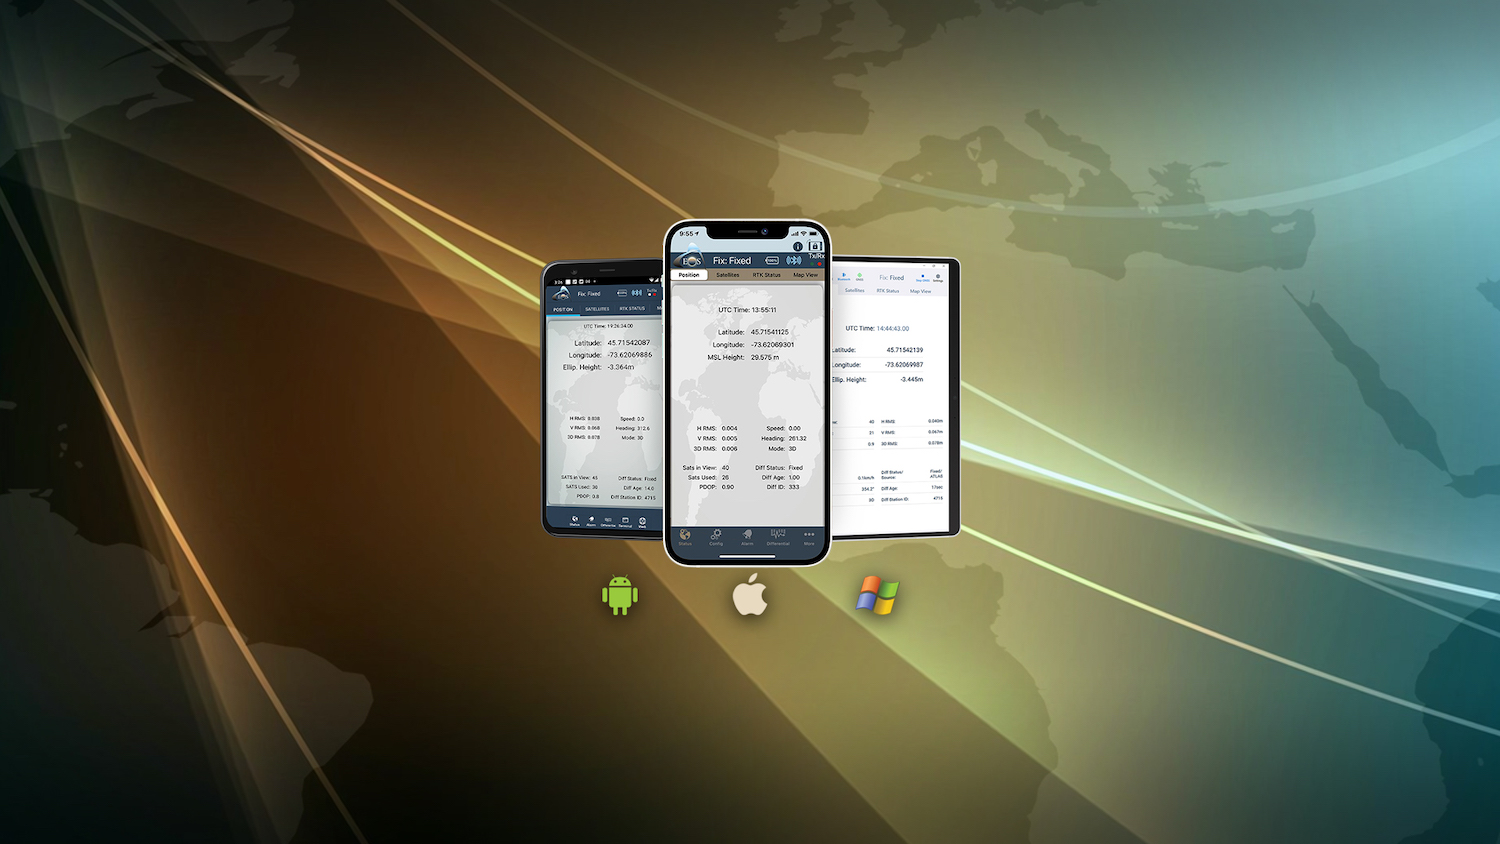 Eos Tools Pro mobile GNSS monitoring app Hero Image: 1500x844